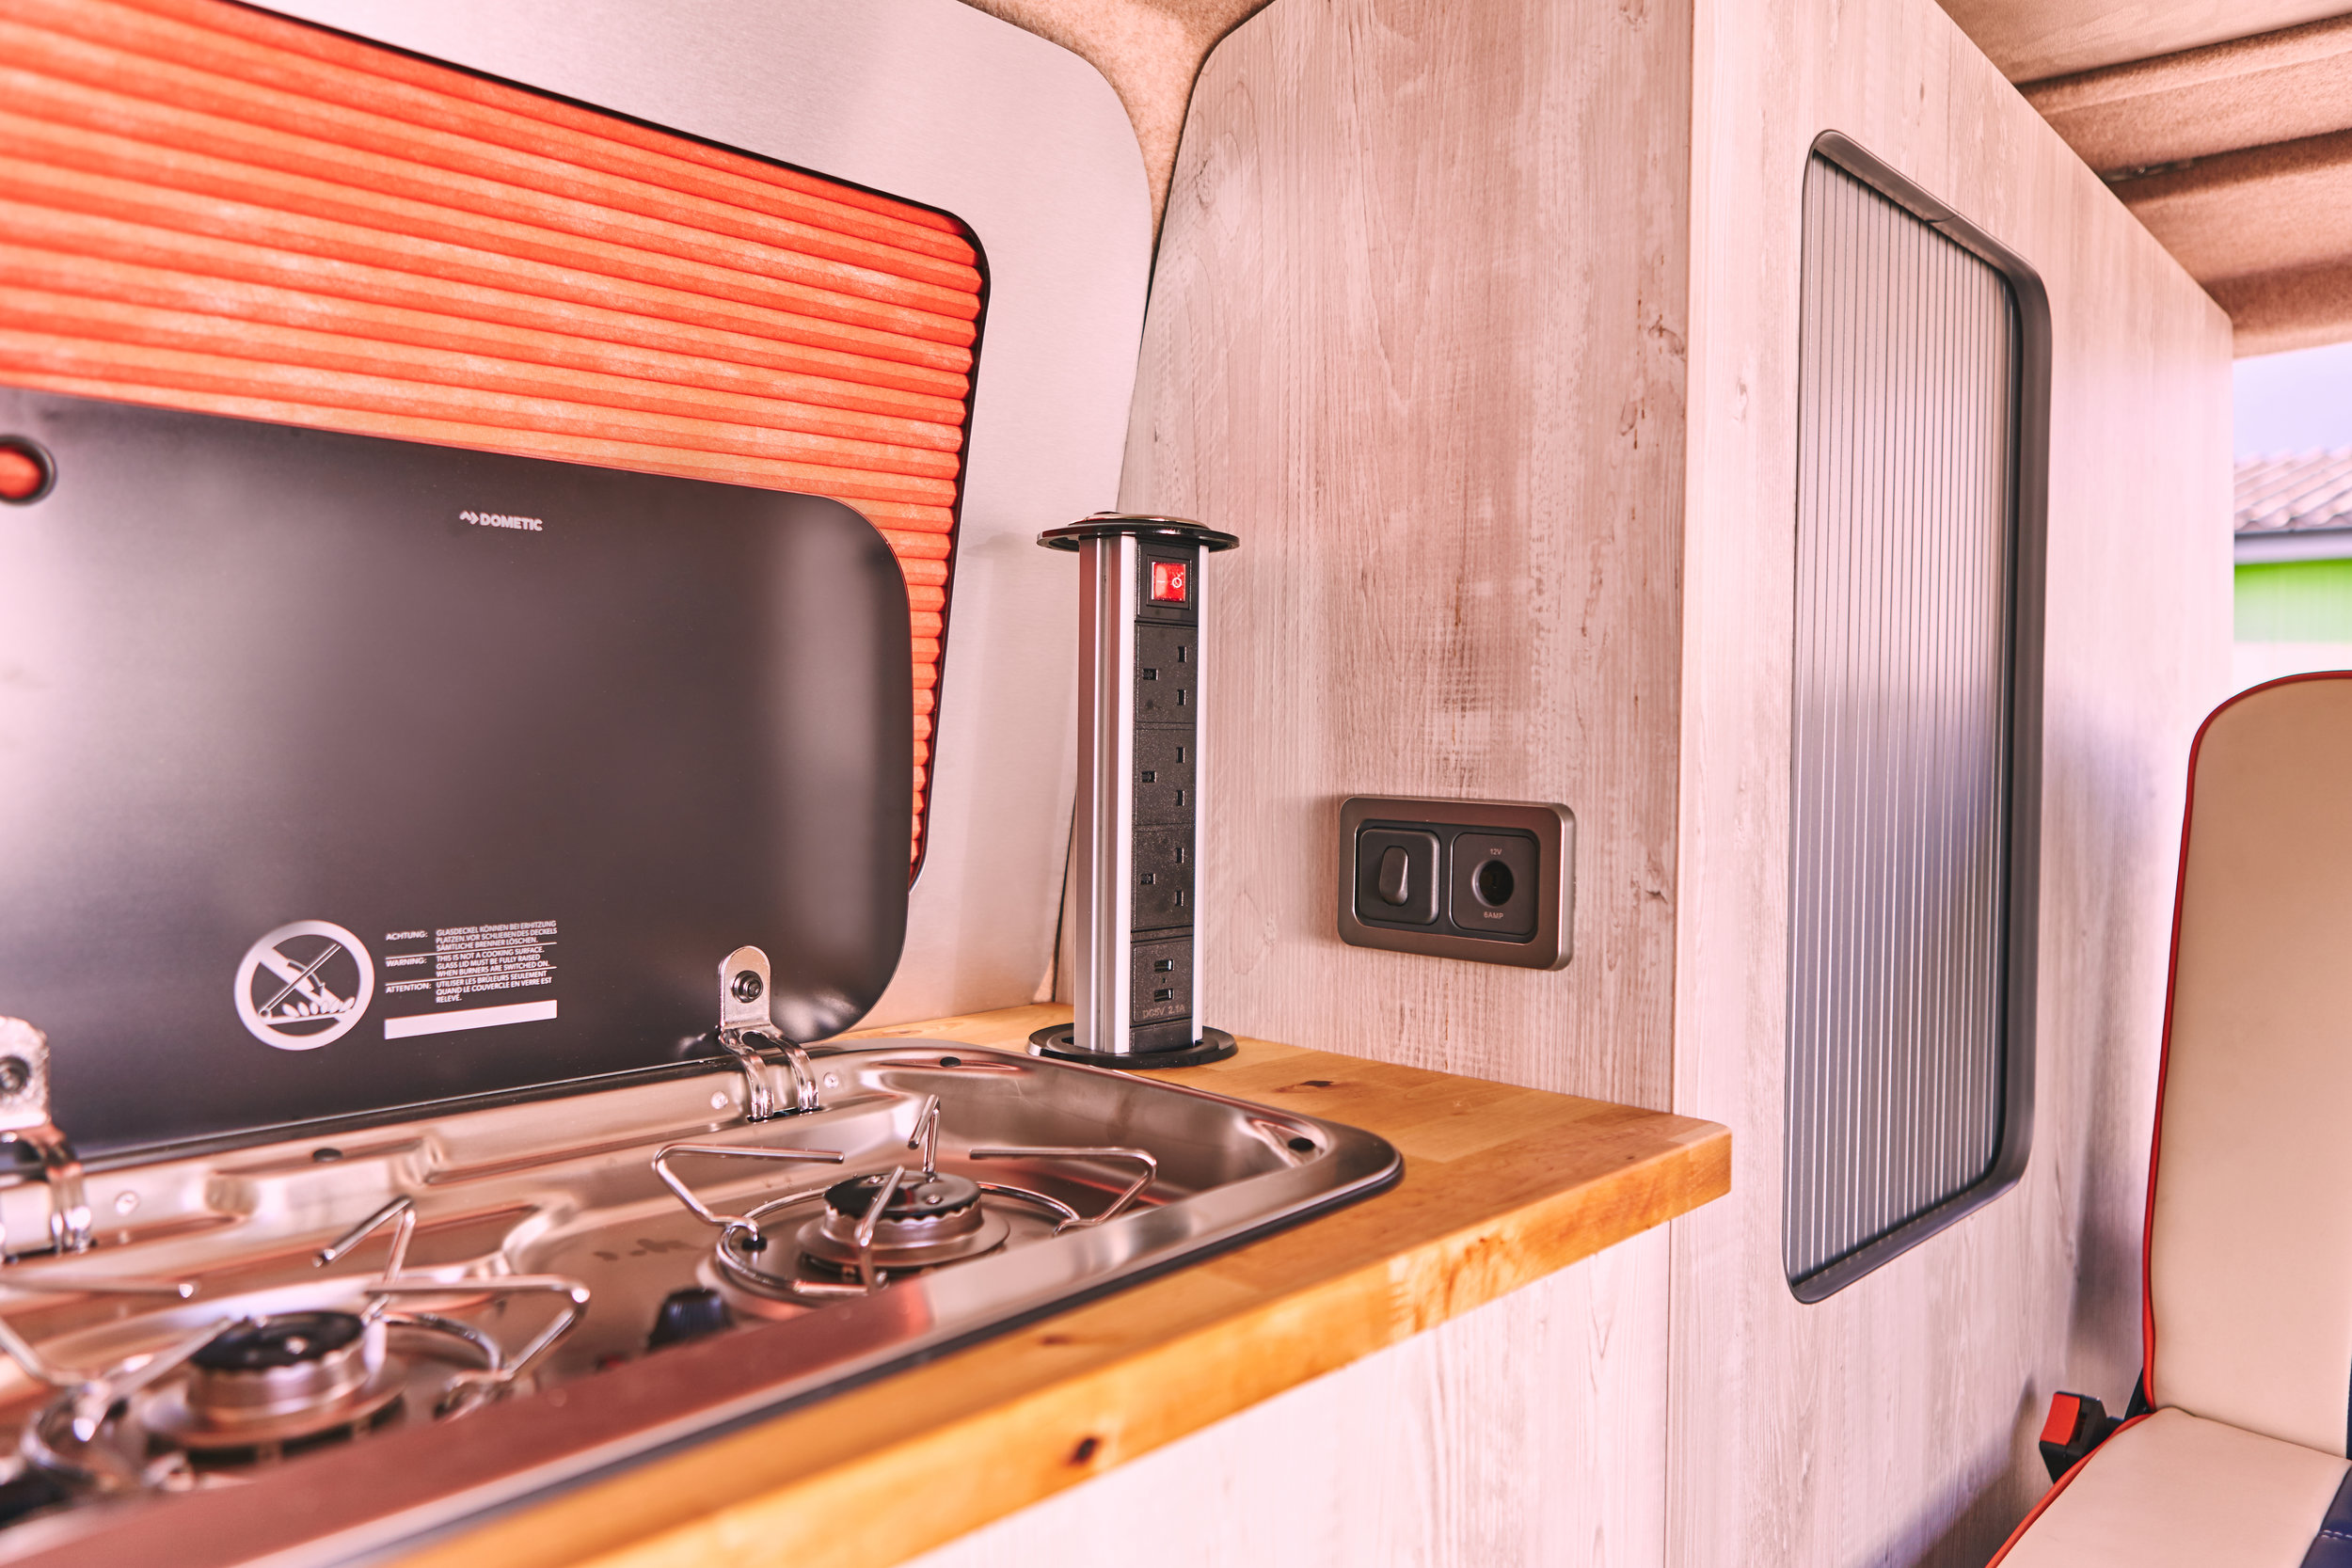 Home comforts. - Our full width kitchen benefits from a double hob, sink, fold tap, power tower with three sockets and two USB's.The satin silver tambour doors conceal your storage area and match the Waeco CRX50 fridge.At North West Dubs we love designing camper van conversions, what inspires you?